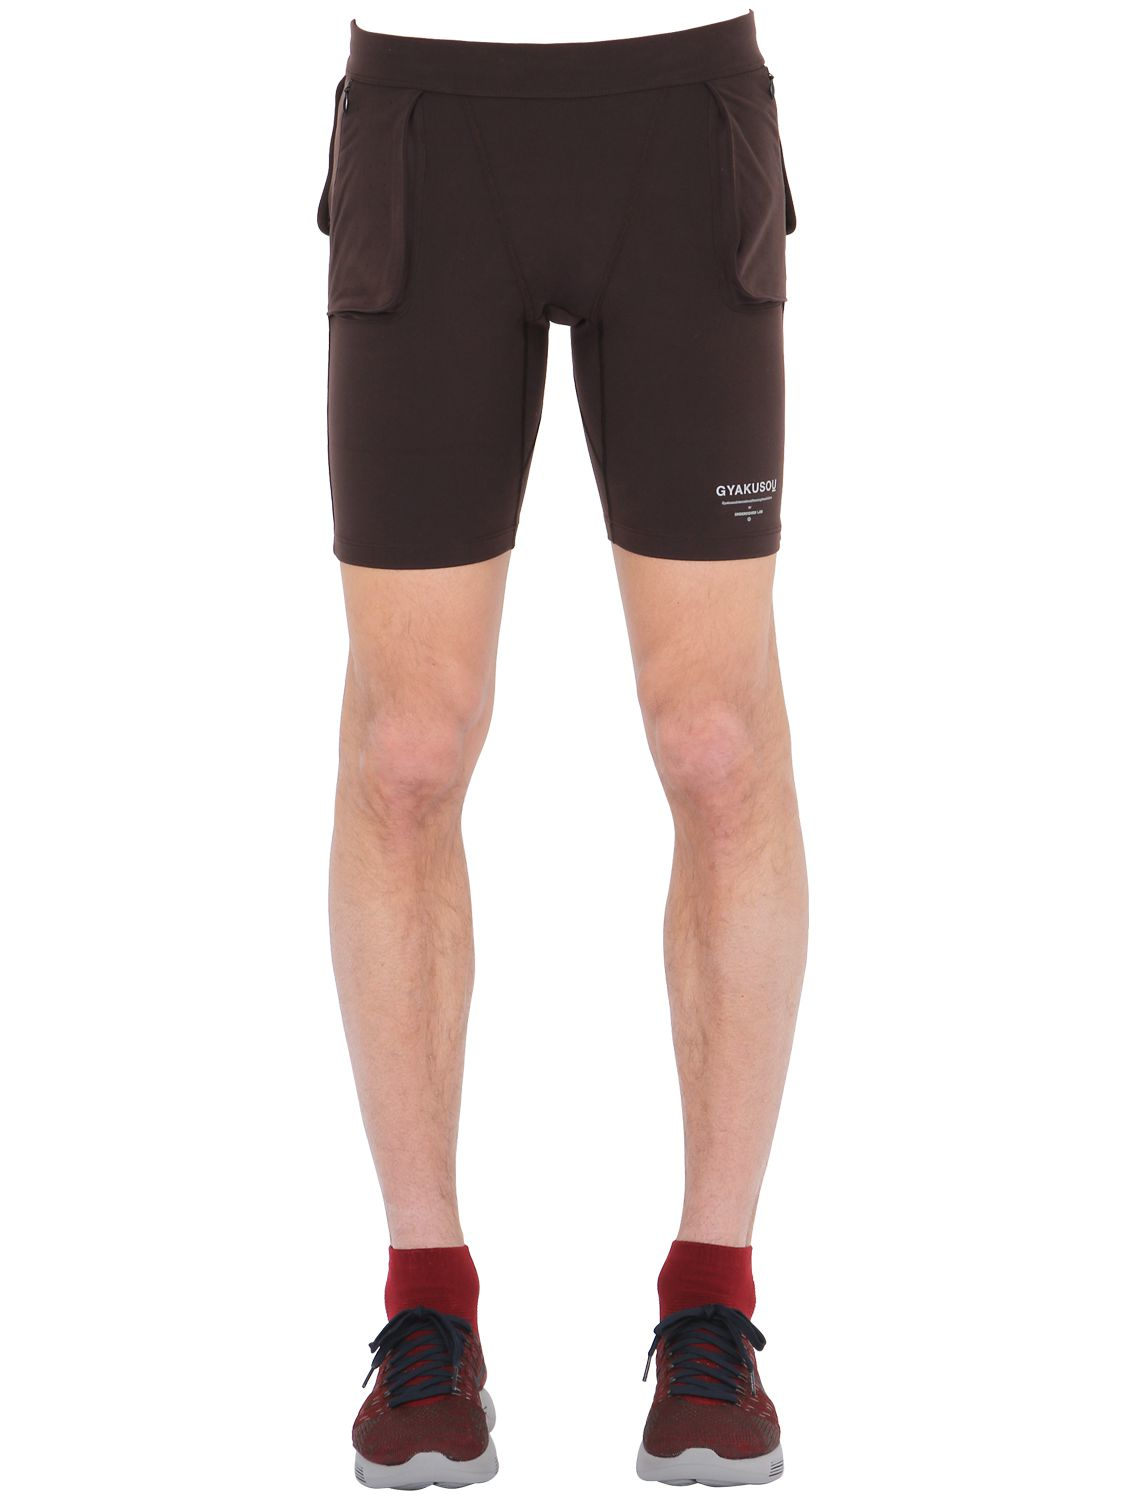 From Ranger Panties to basketball shorts, whatever style you prefer in your athletic shorts, you can find a cut that will support your workout. At whomeverf.cf, we supply a number of options to choose from, loaded with performance-boosting features.